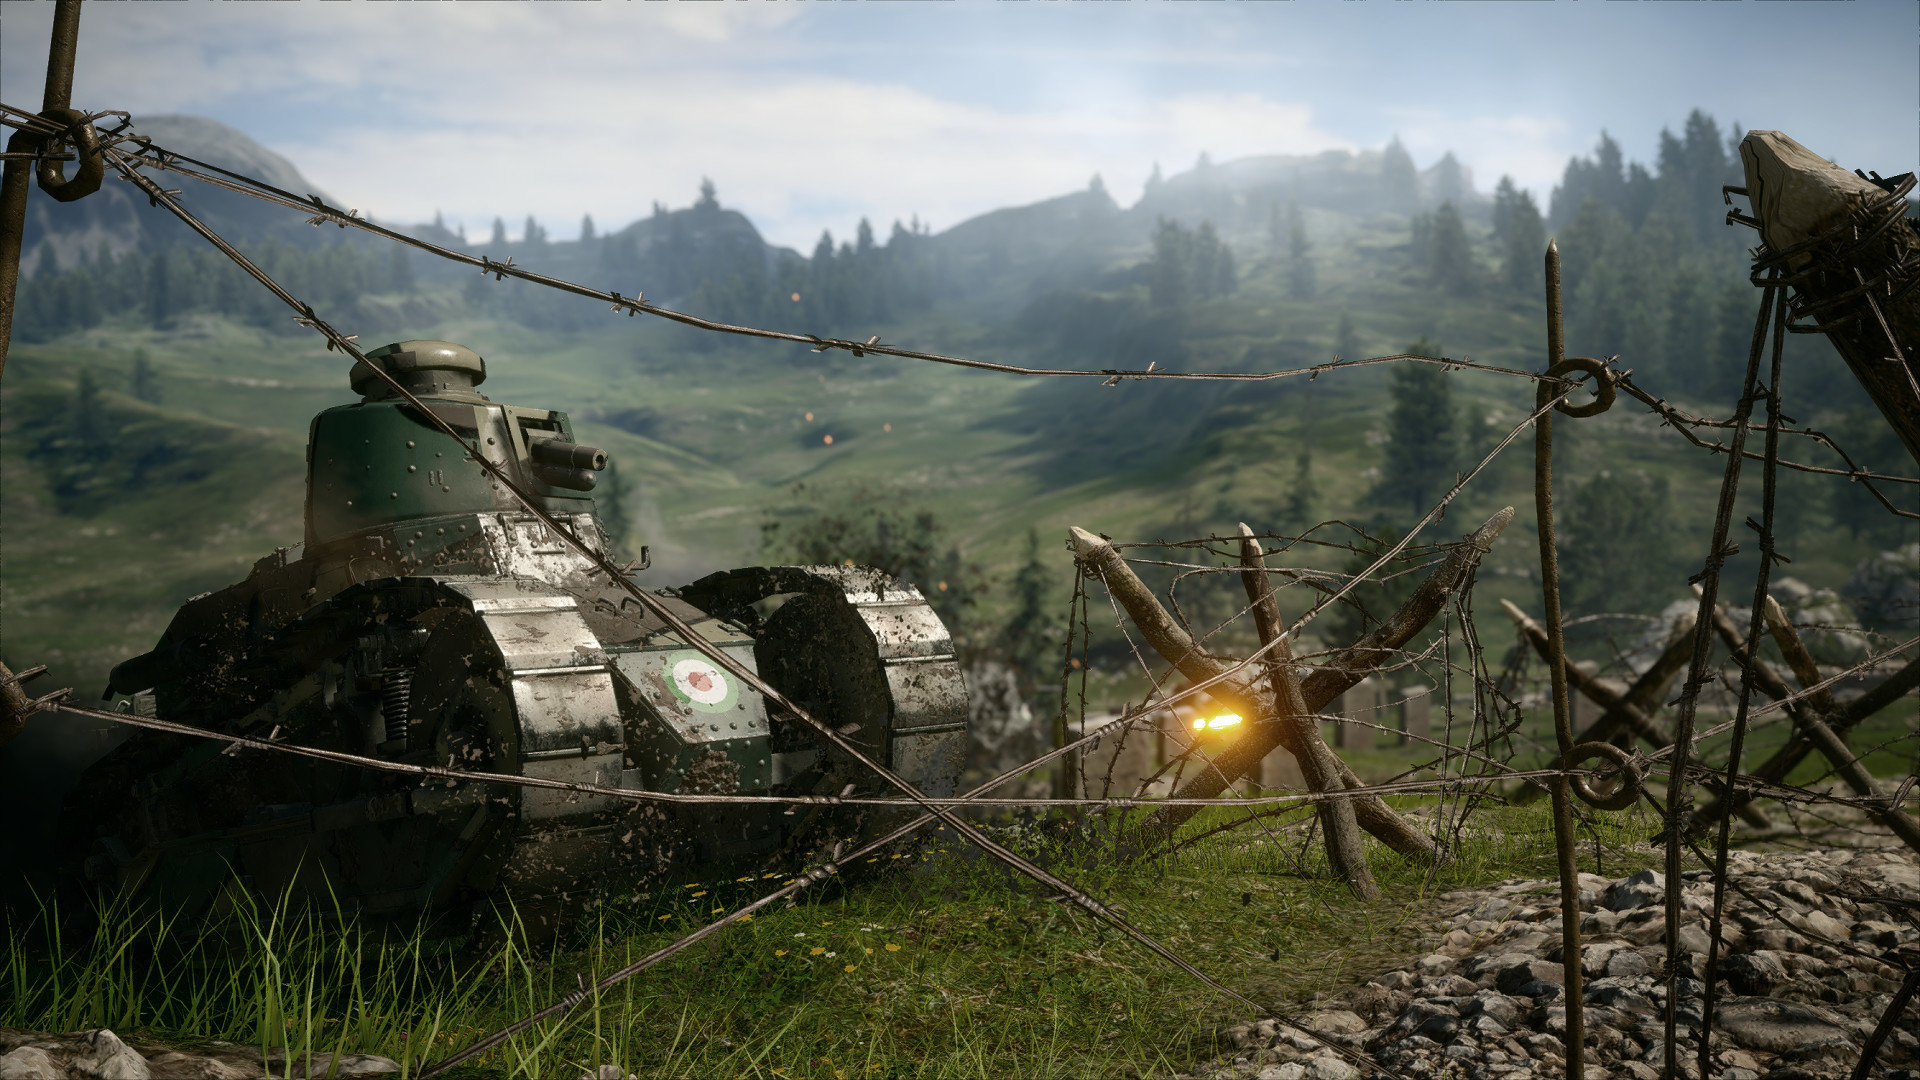 Download Hd 1080p Battlefield 1 Computer Wallpaper Id 498154 For Free